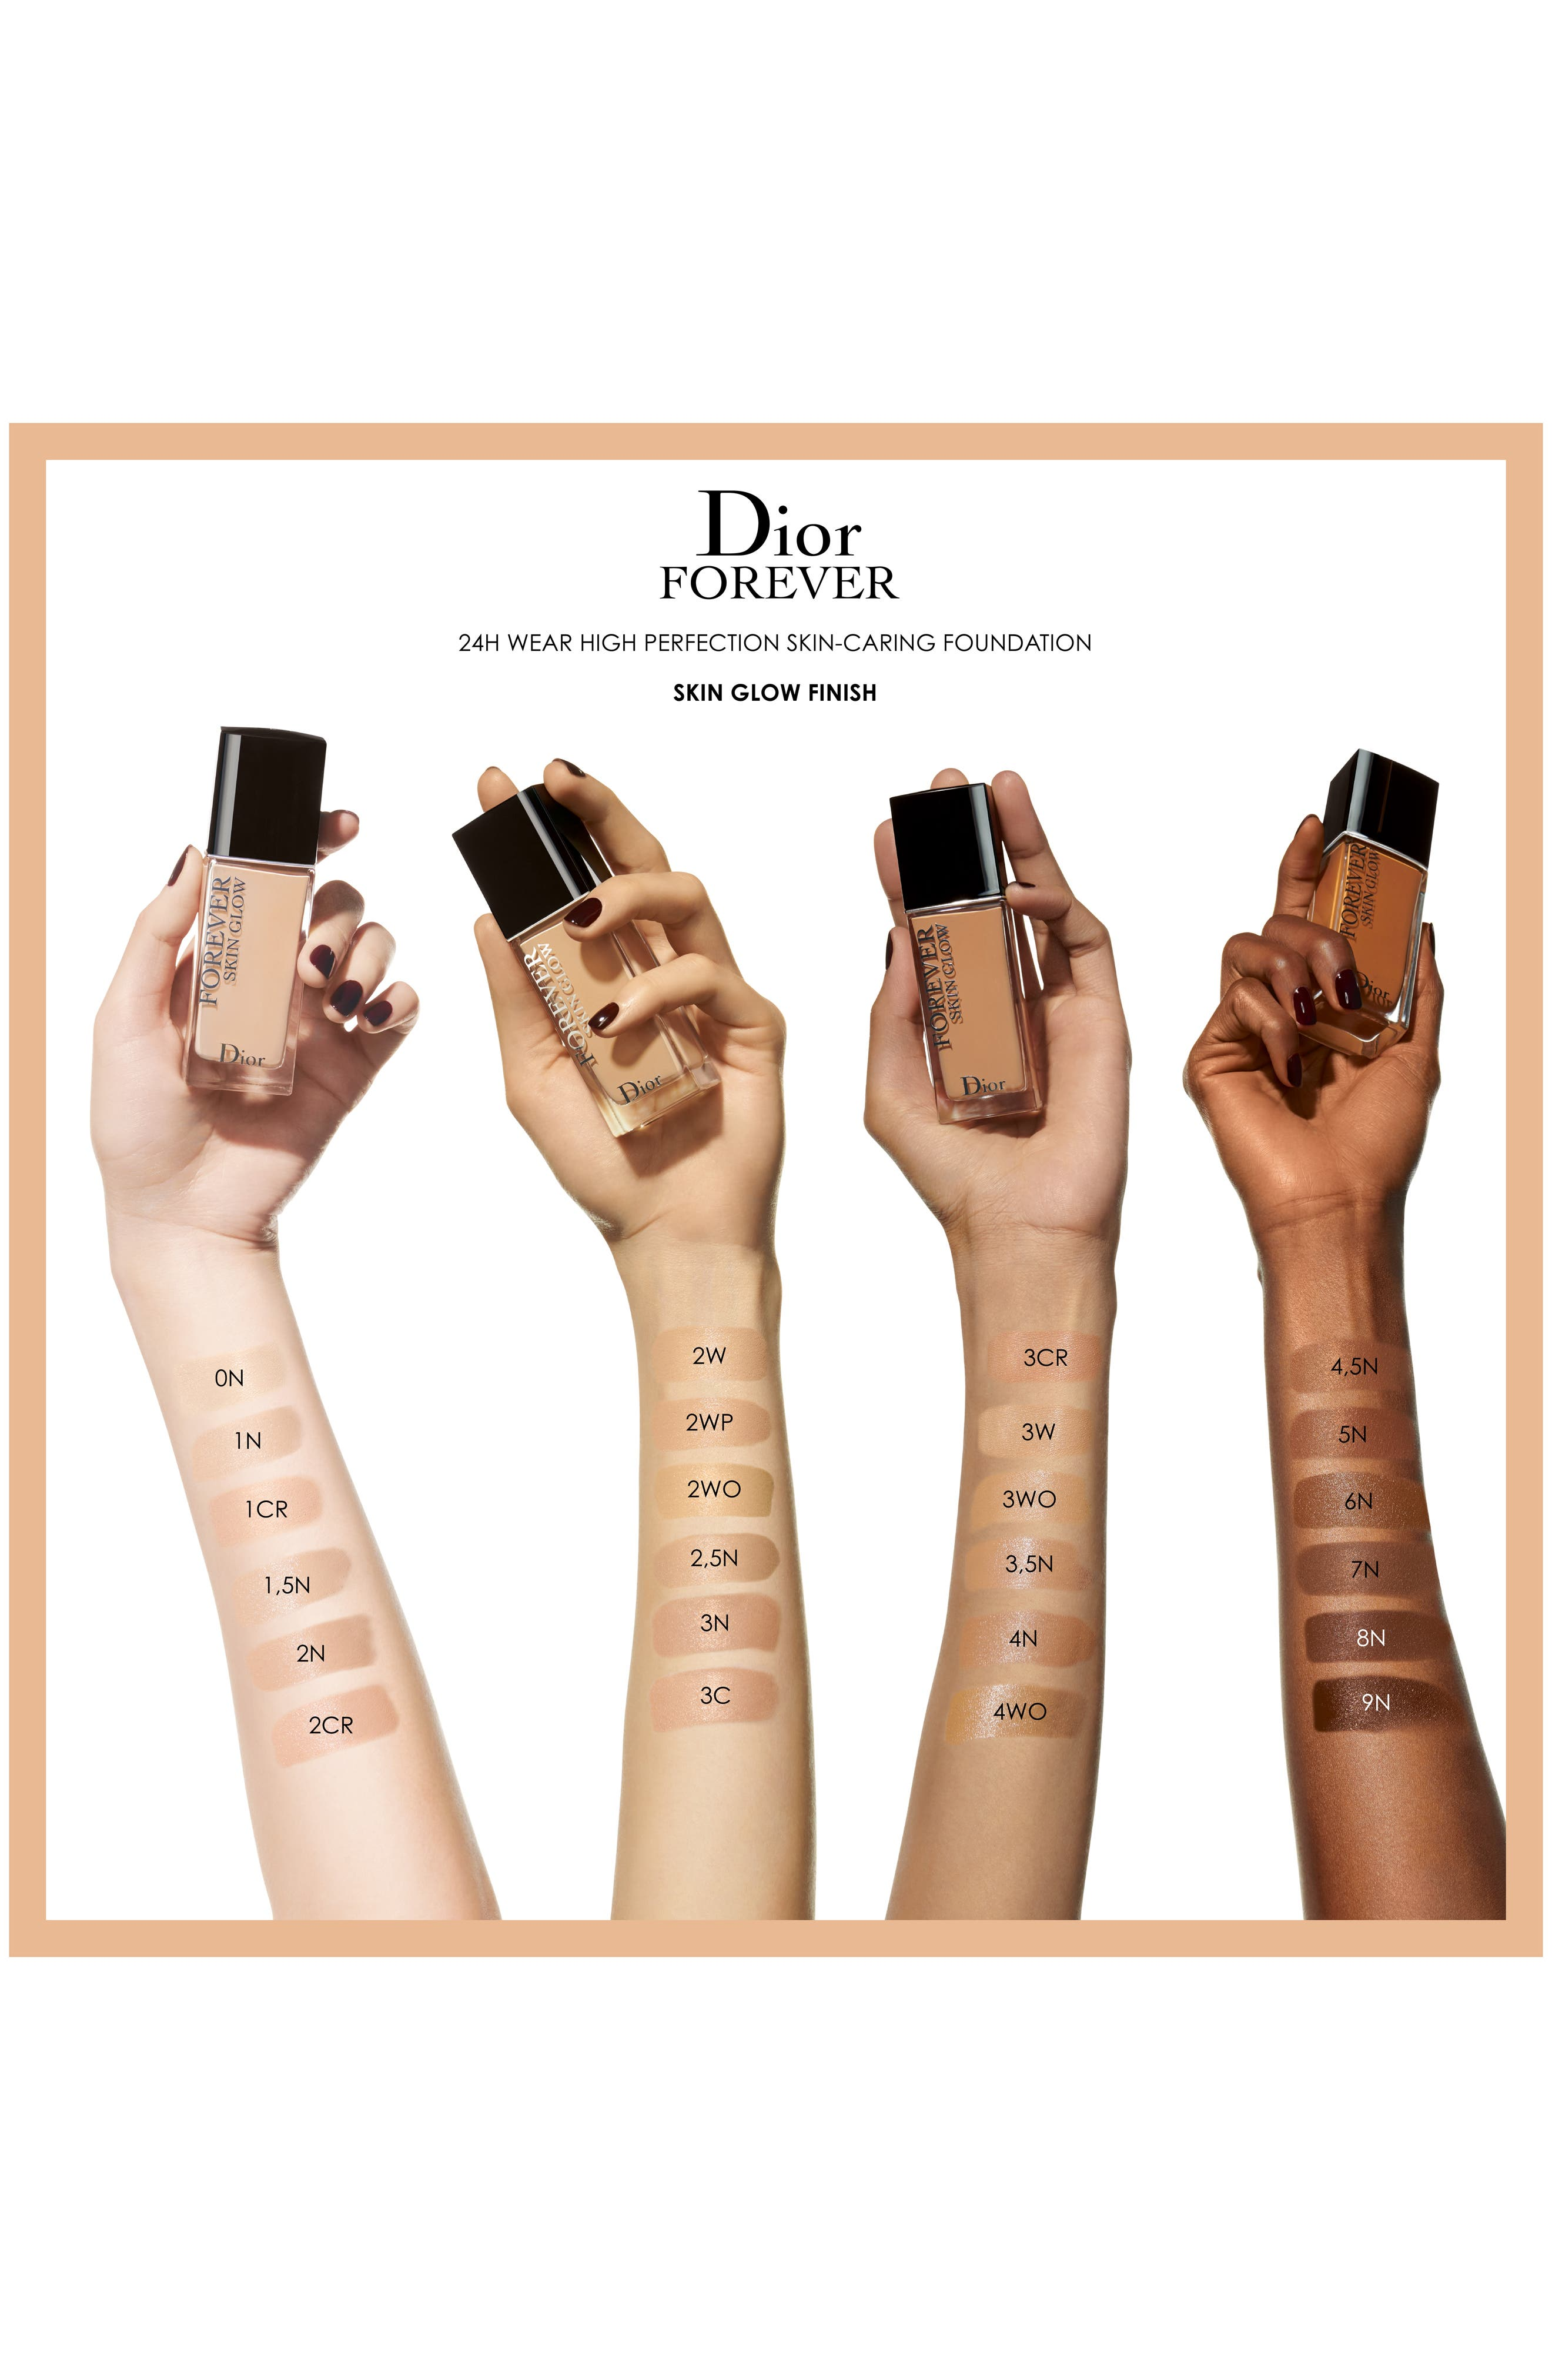 Forever Skin Glow Radiant Perfection Skin-Caring Foundation SPF 35,                             Alternate thumbnail 3, color,                             1 NEUTRAL